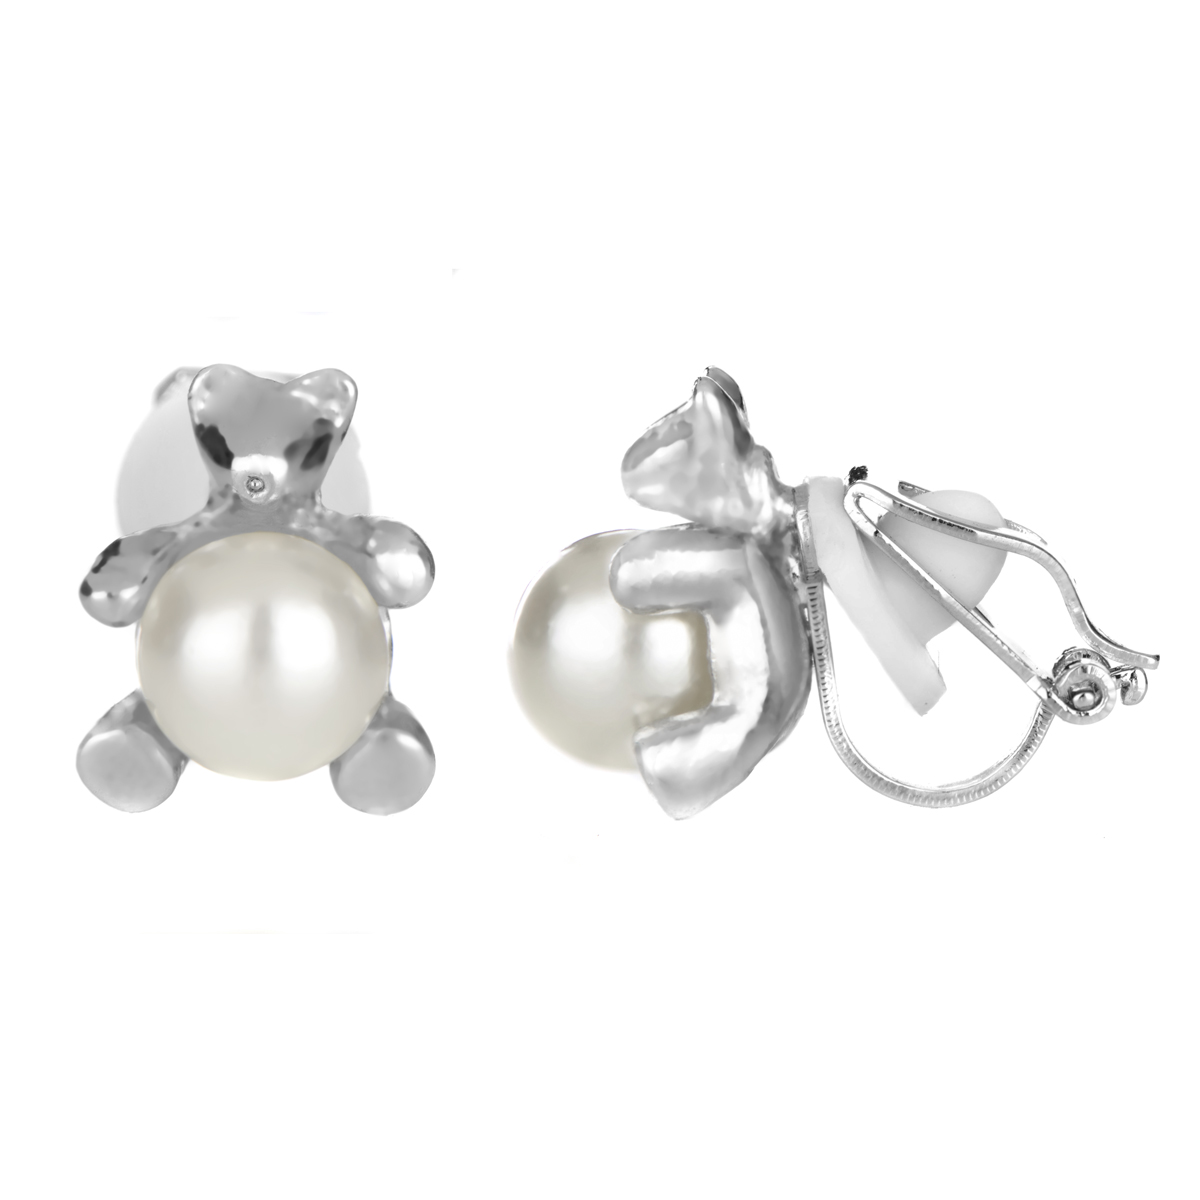 Melody's 8mm Imitation Pearl Teddy Bear Clip On Earrings Roll Off Image To  Close Zoom Window